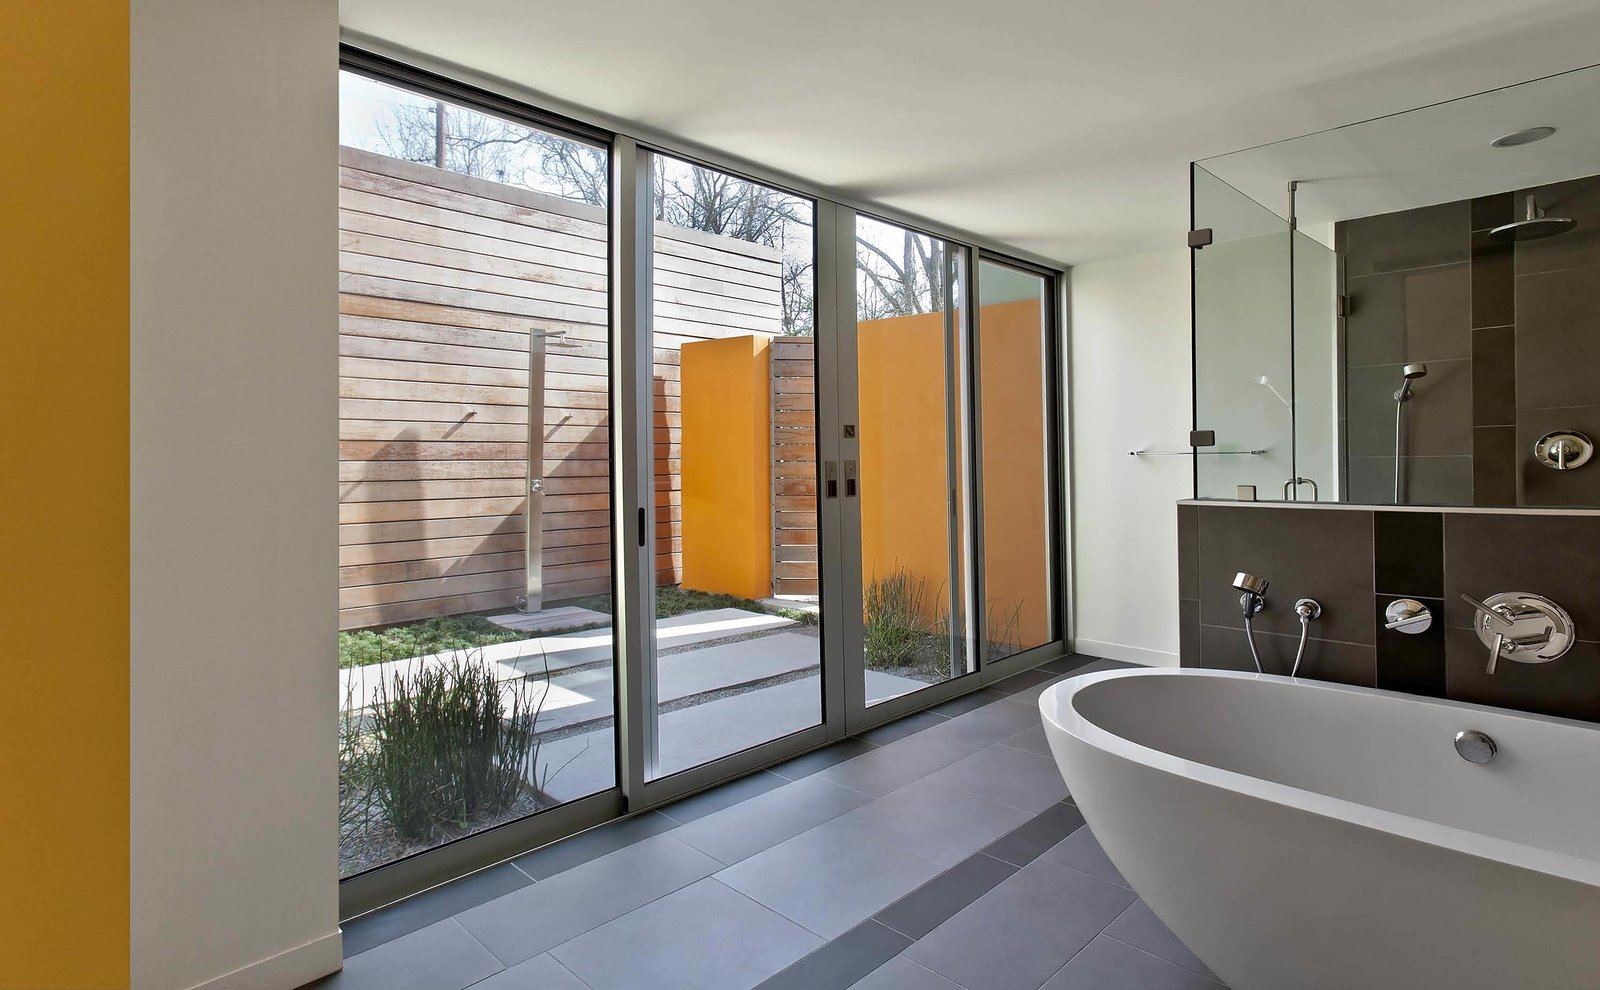 Nestled in between the master bedroom addition and the master bathroom is an outdoor shower. Just as with the kitchen and patio, floor-to-ceiling glazing and continuous concrete pavers blur the barrier between interior and exterior.